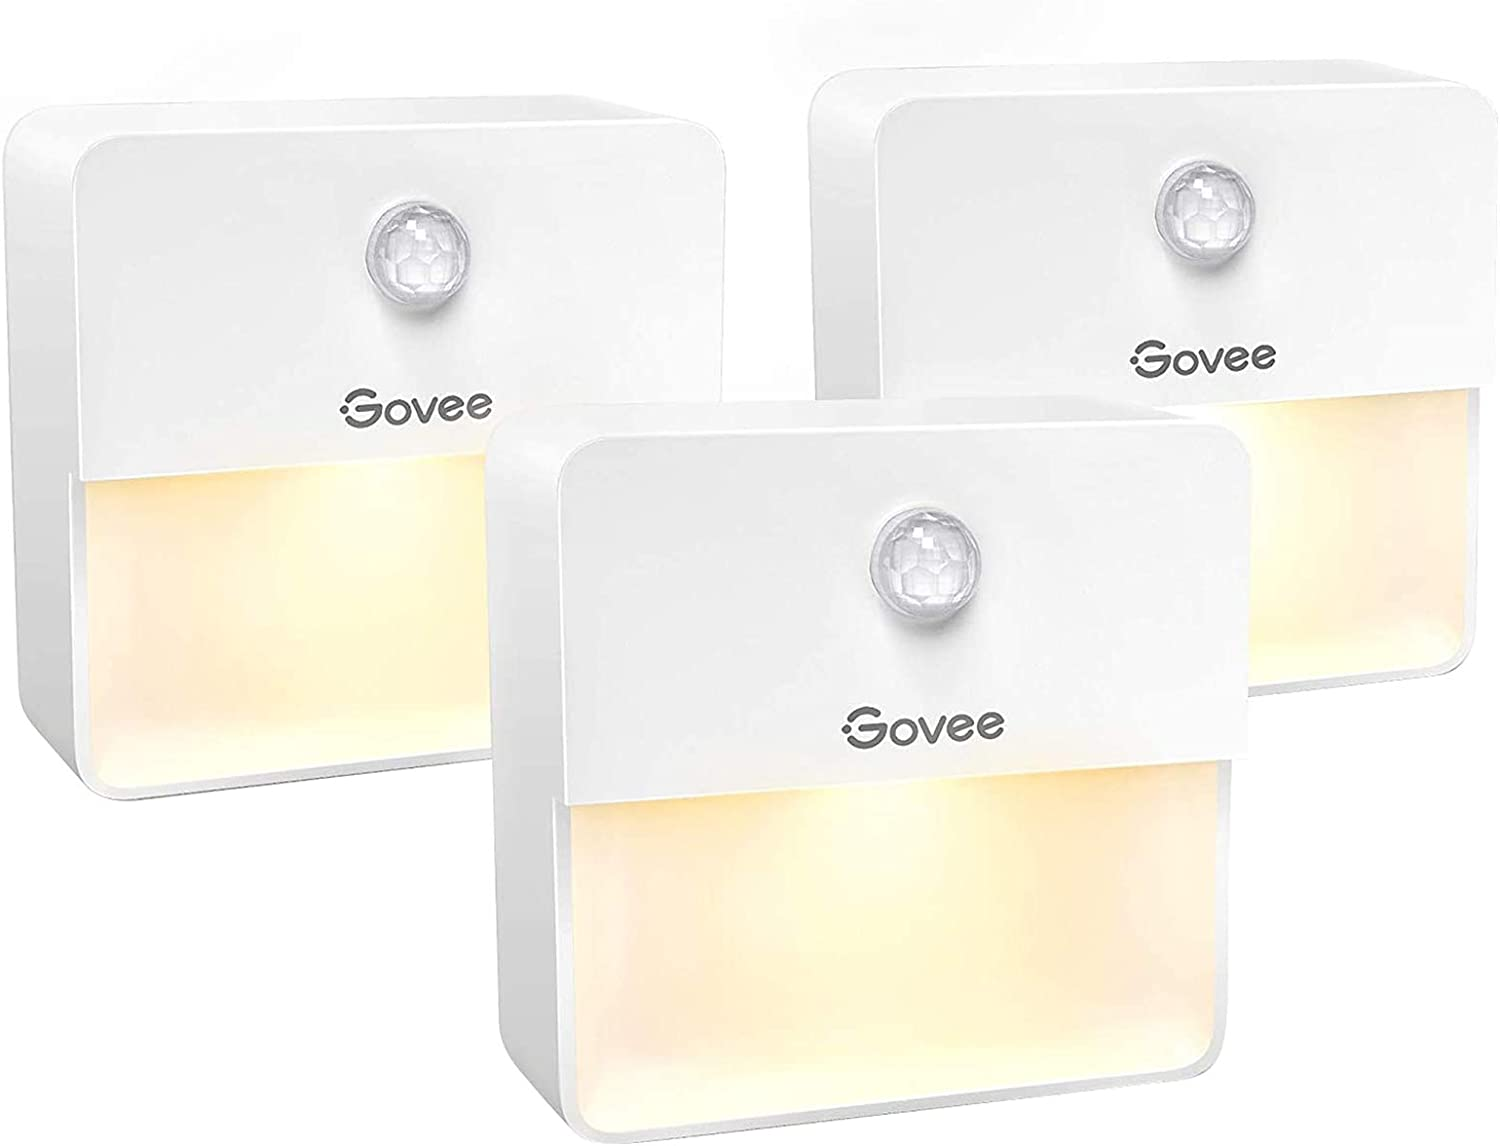 Govee LED Night Light Motion Sensor and Battery Powered, Warm White and Soft Light LED, Stick-on Night Lights, Energy Efficient and Compact for Bathroom Hallway Bedroom Stairs Kitchen, 3 Pack